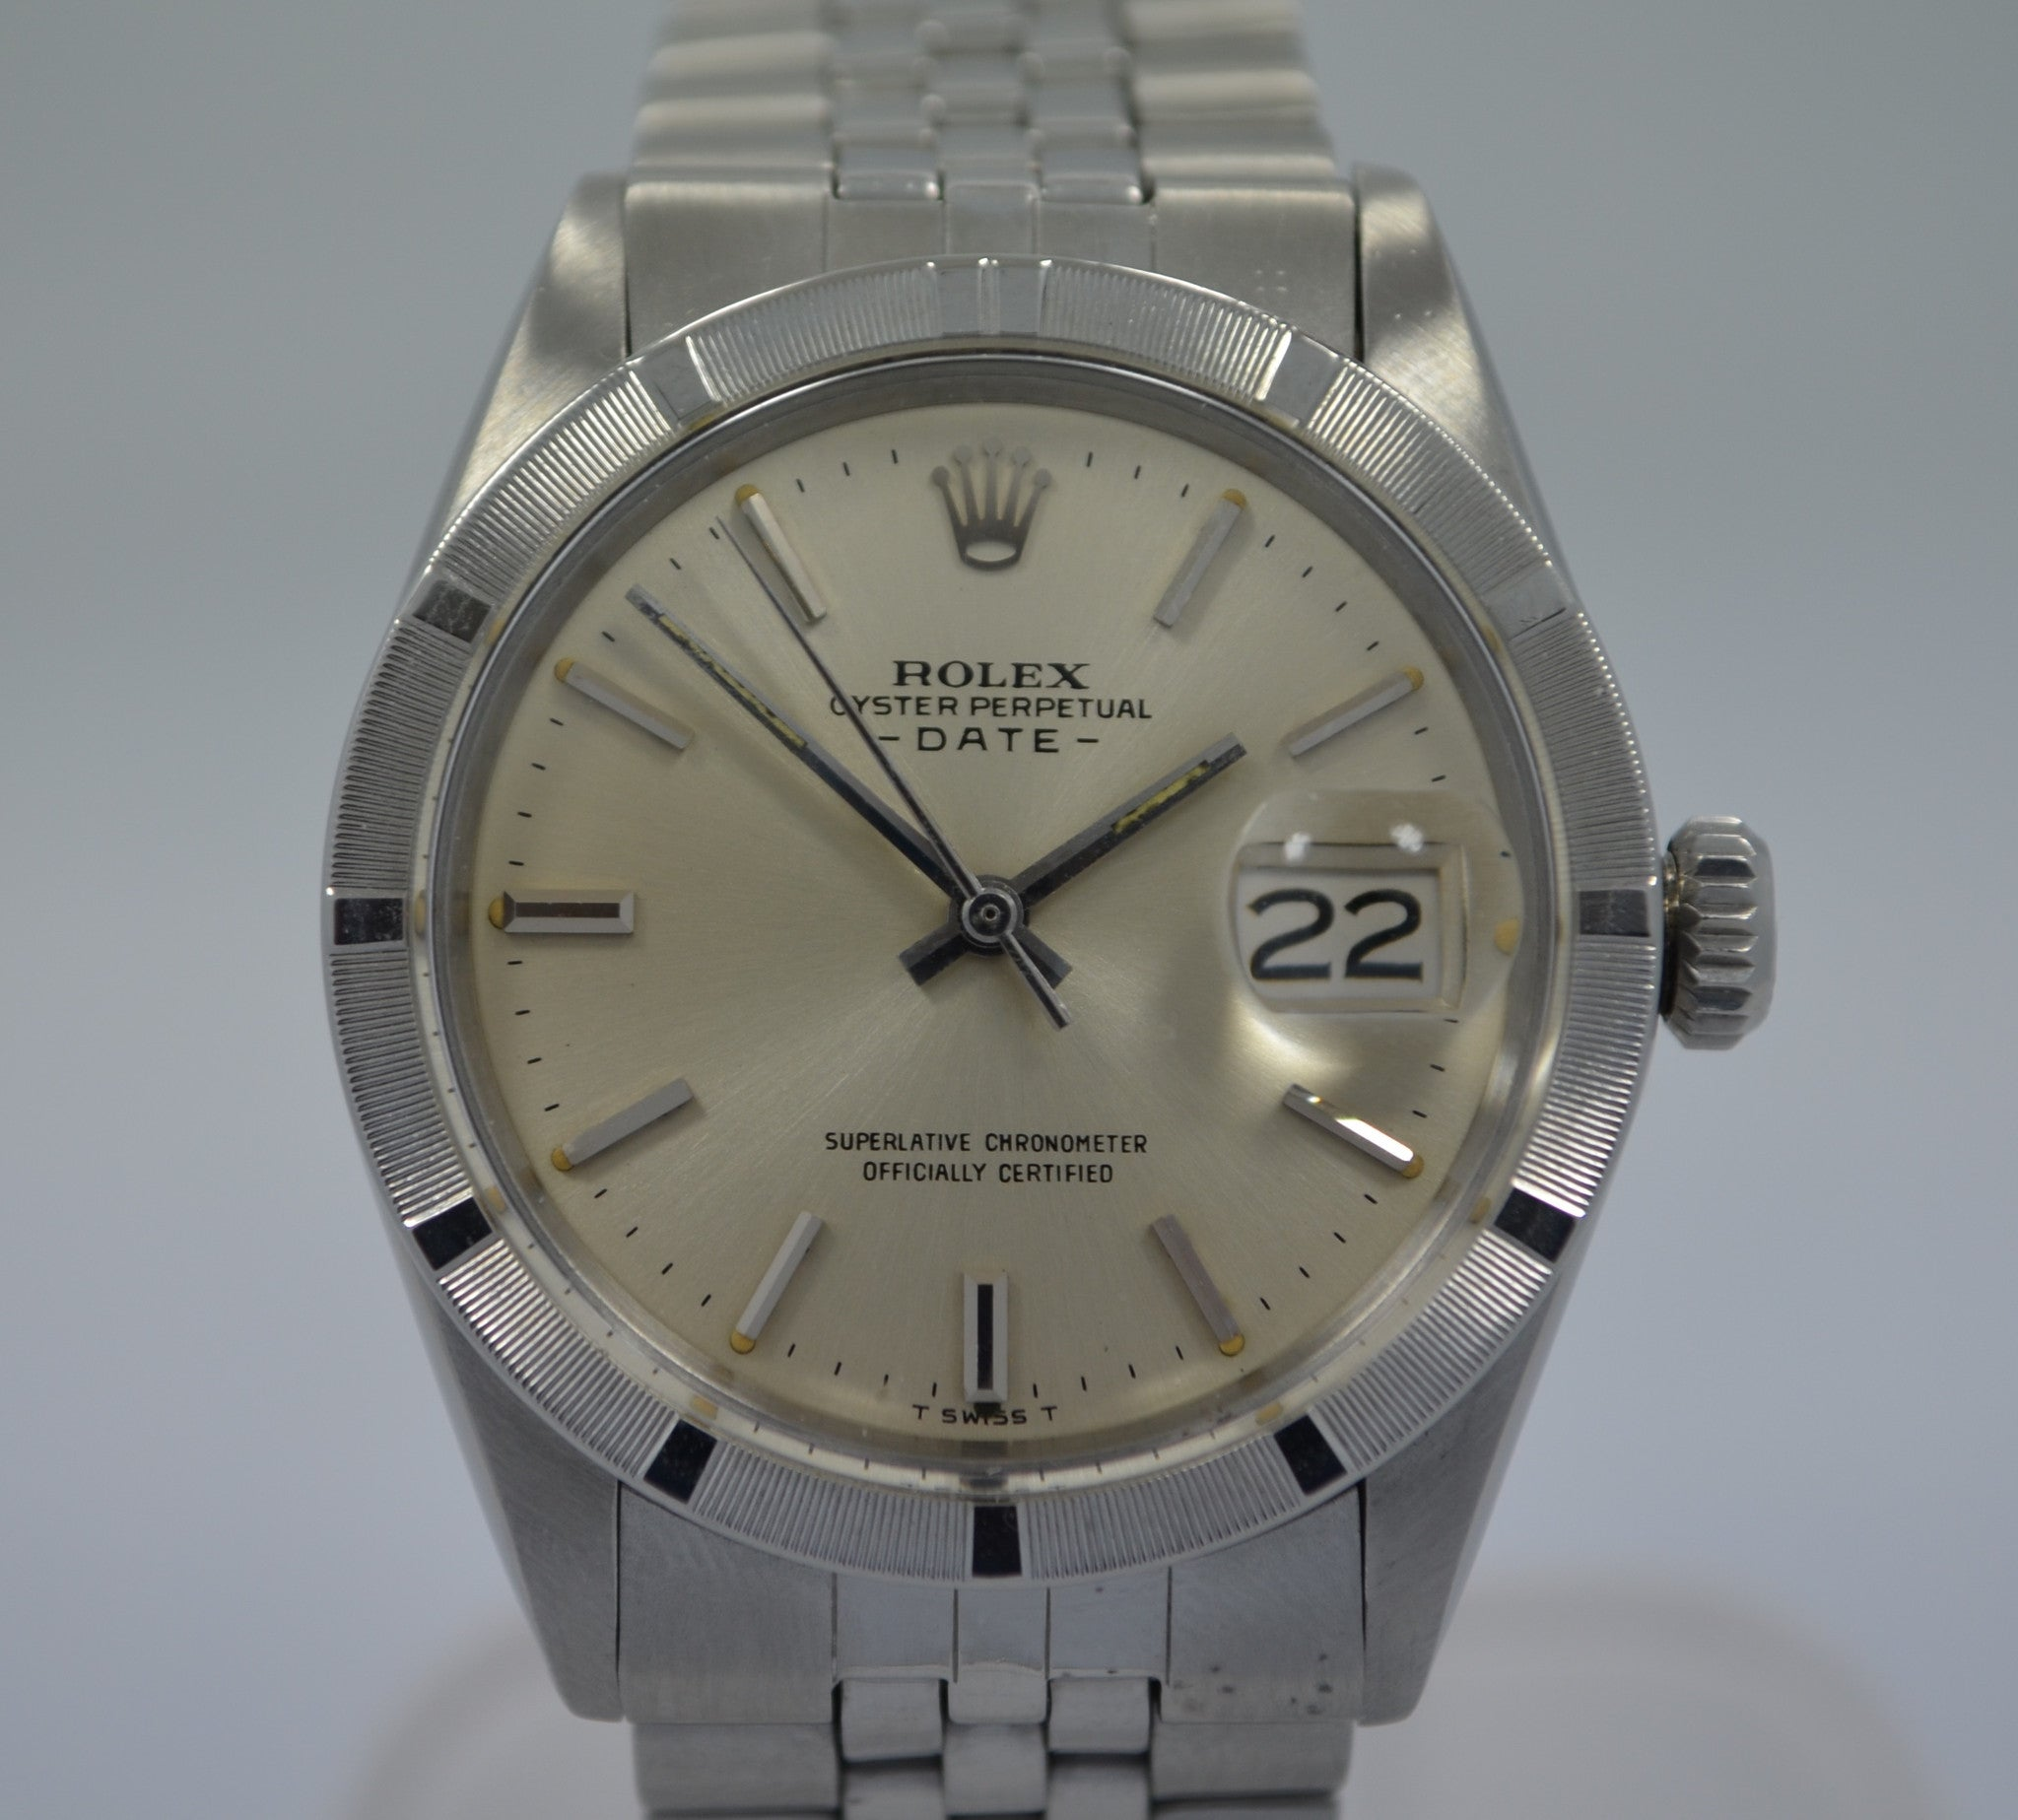 Vintage Rolex 1501 Oyster Perpetual Date 1968 Stainless Steel Silver Wristwatch - Hashtag Watch Company